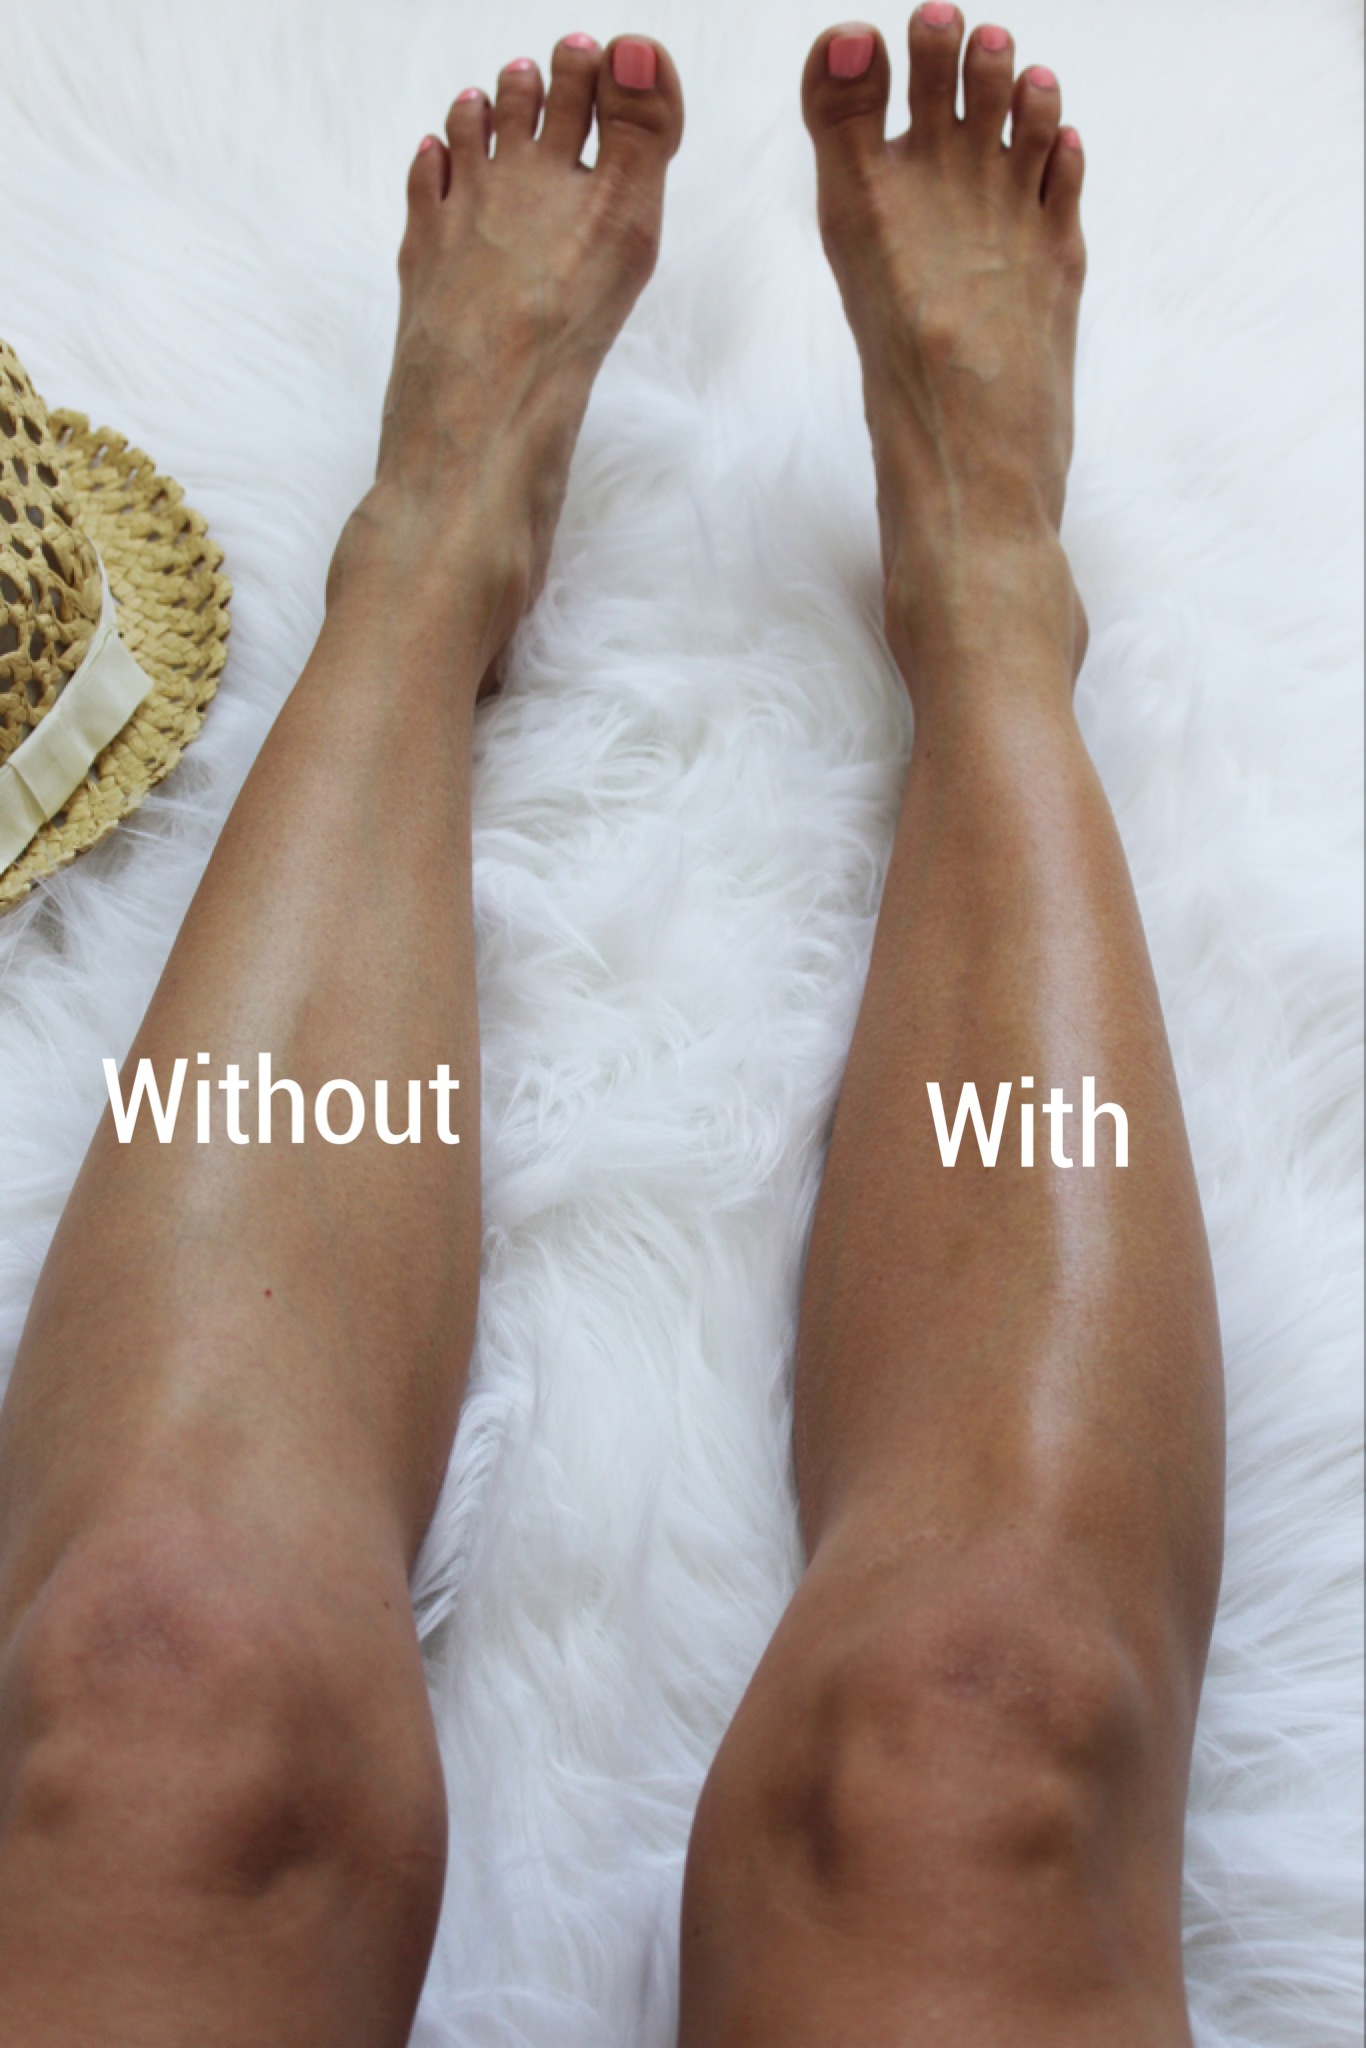 A Healthy Tan With Bioderma Photoderm Self-Tanner